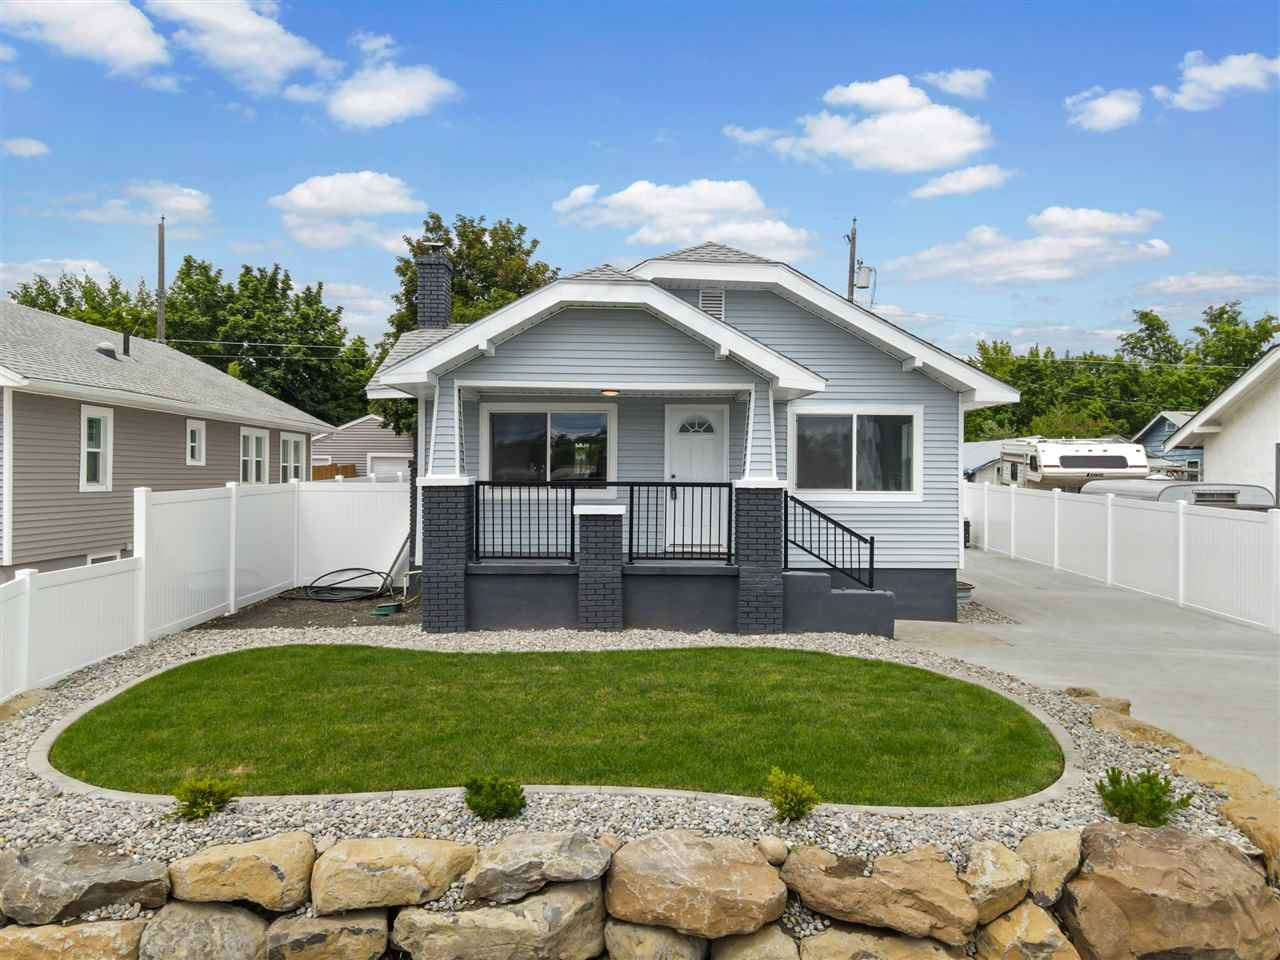 127 E Glass Ave, Spokane, WA 99207 - #: 202017384